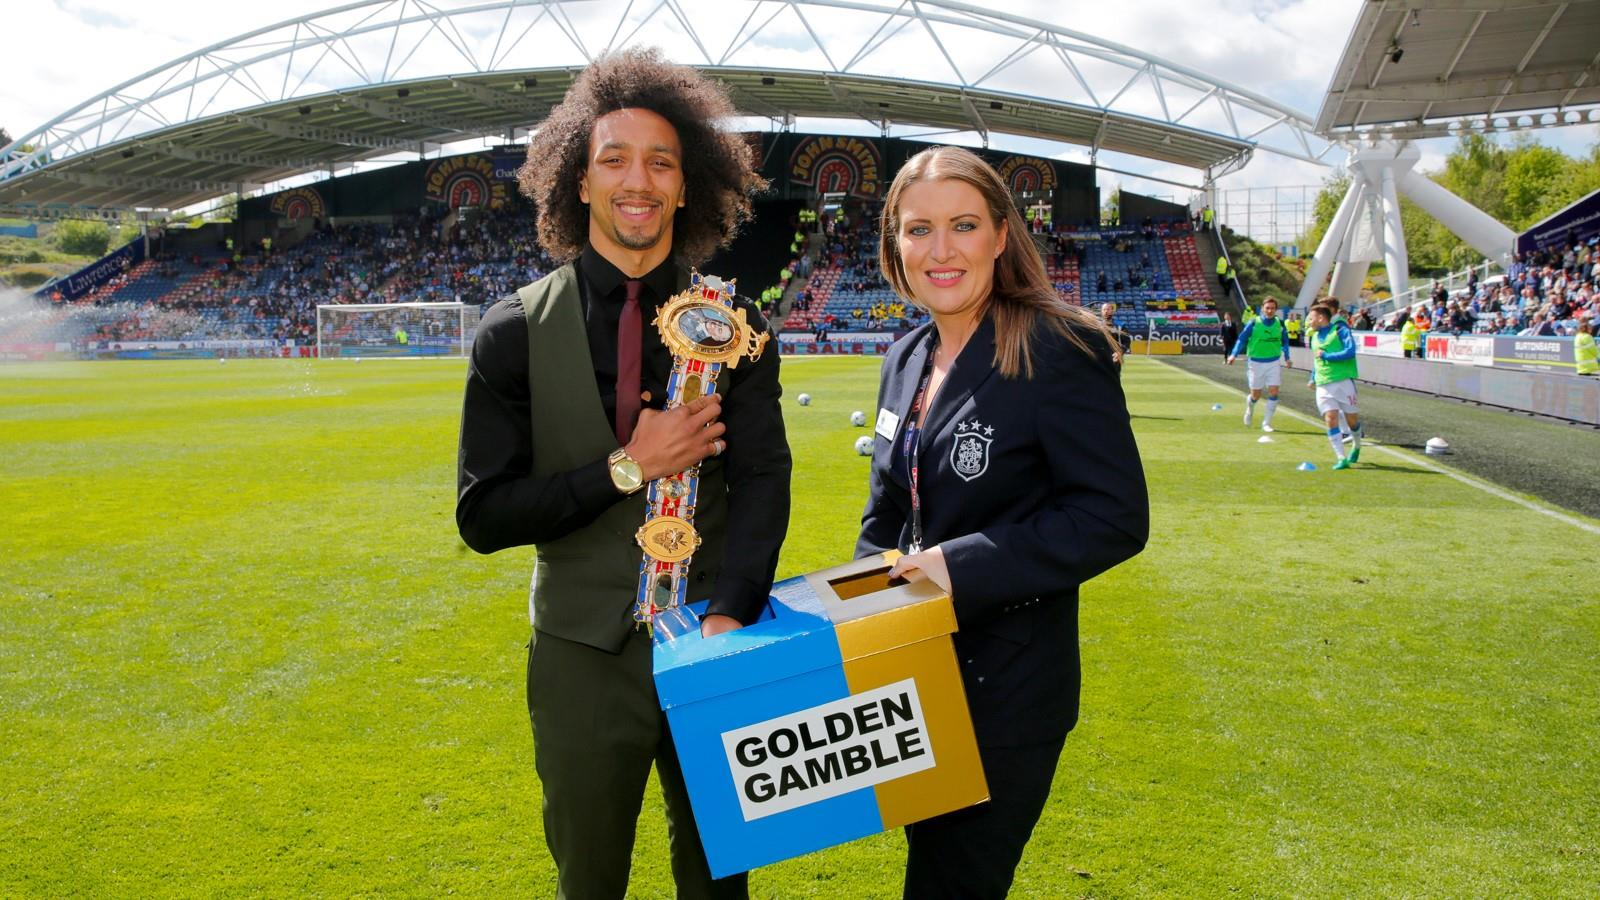 Golden gamble results cardiff city news huddersfield town - Cardiff city ticket office number ...